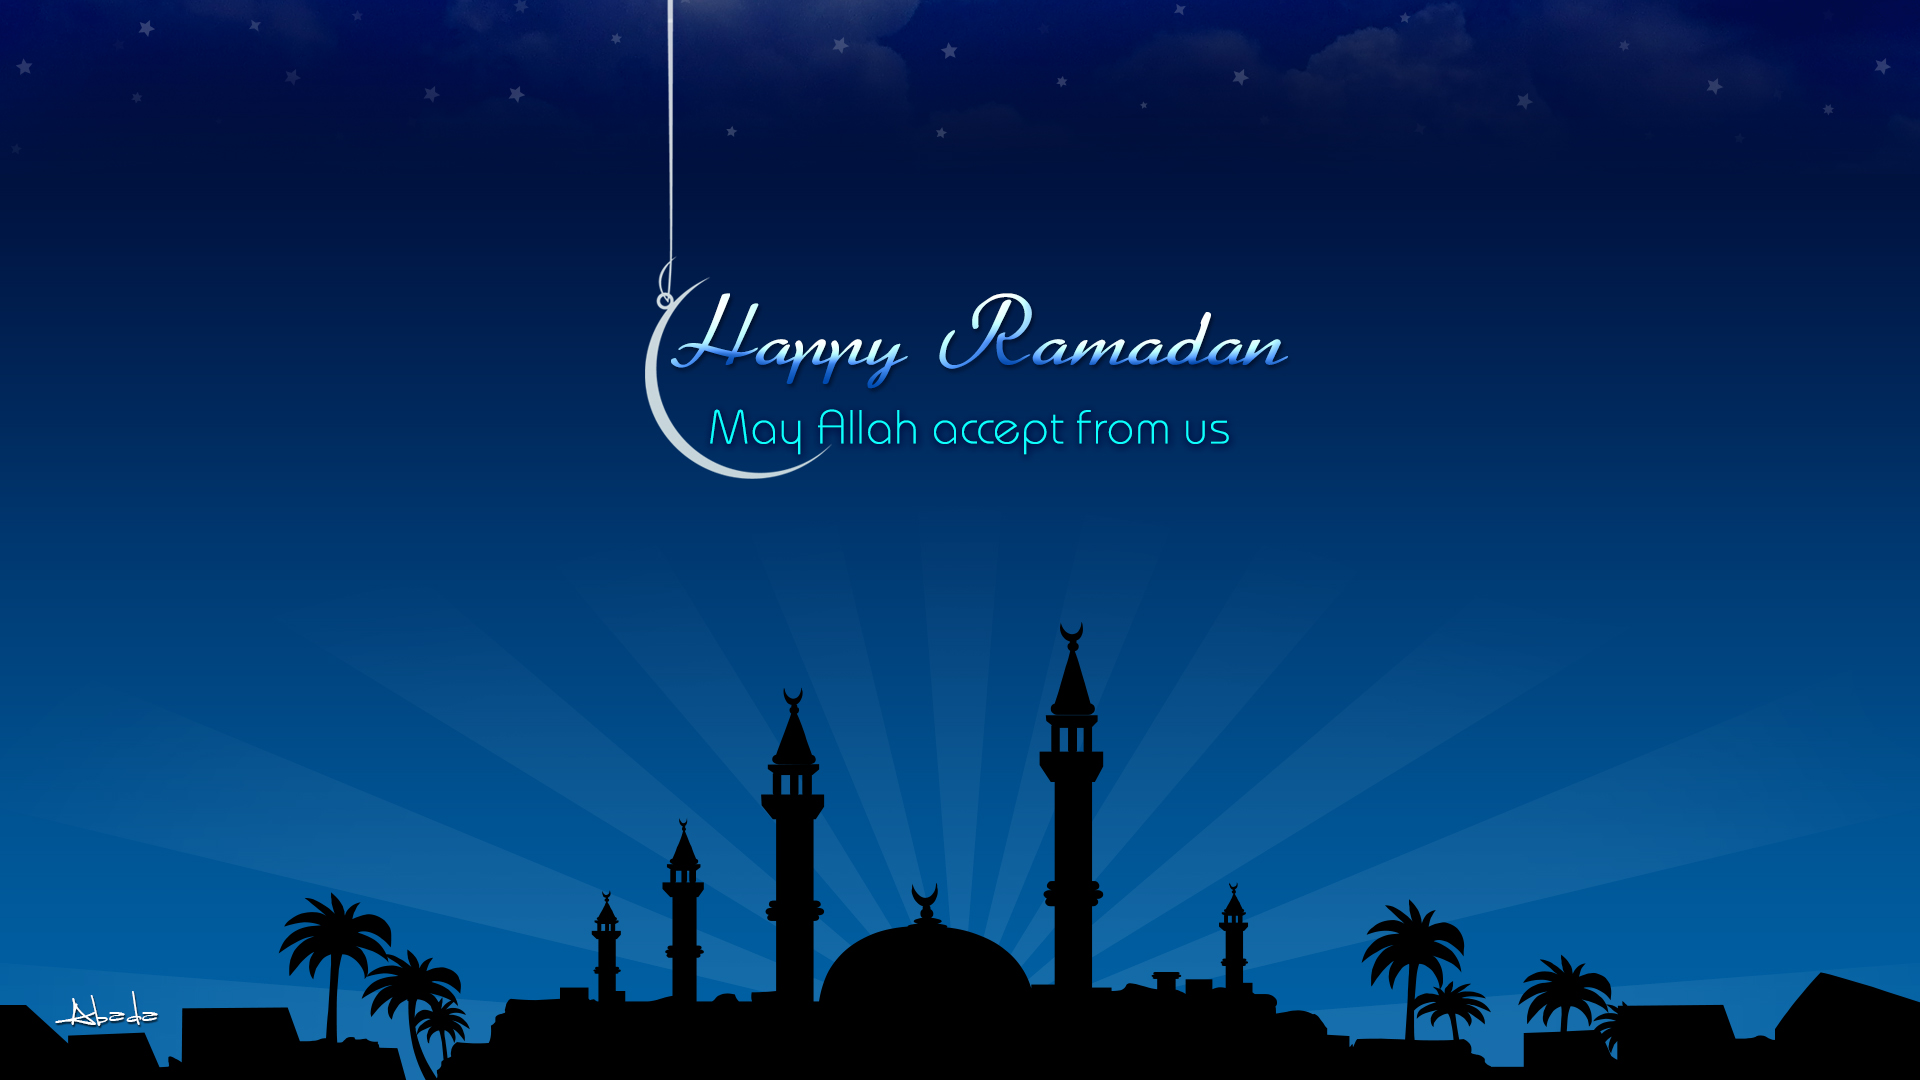 Ramadan Wallpapers HD  Android Apps on Google Play 1920x1080